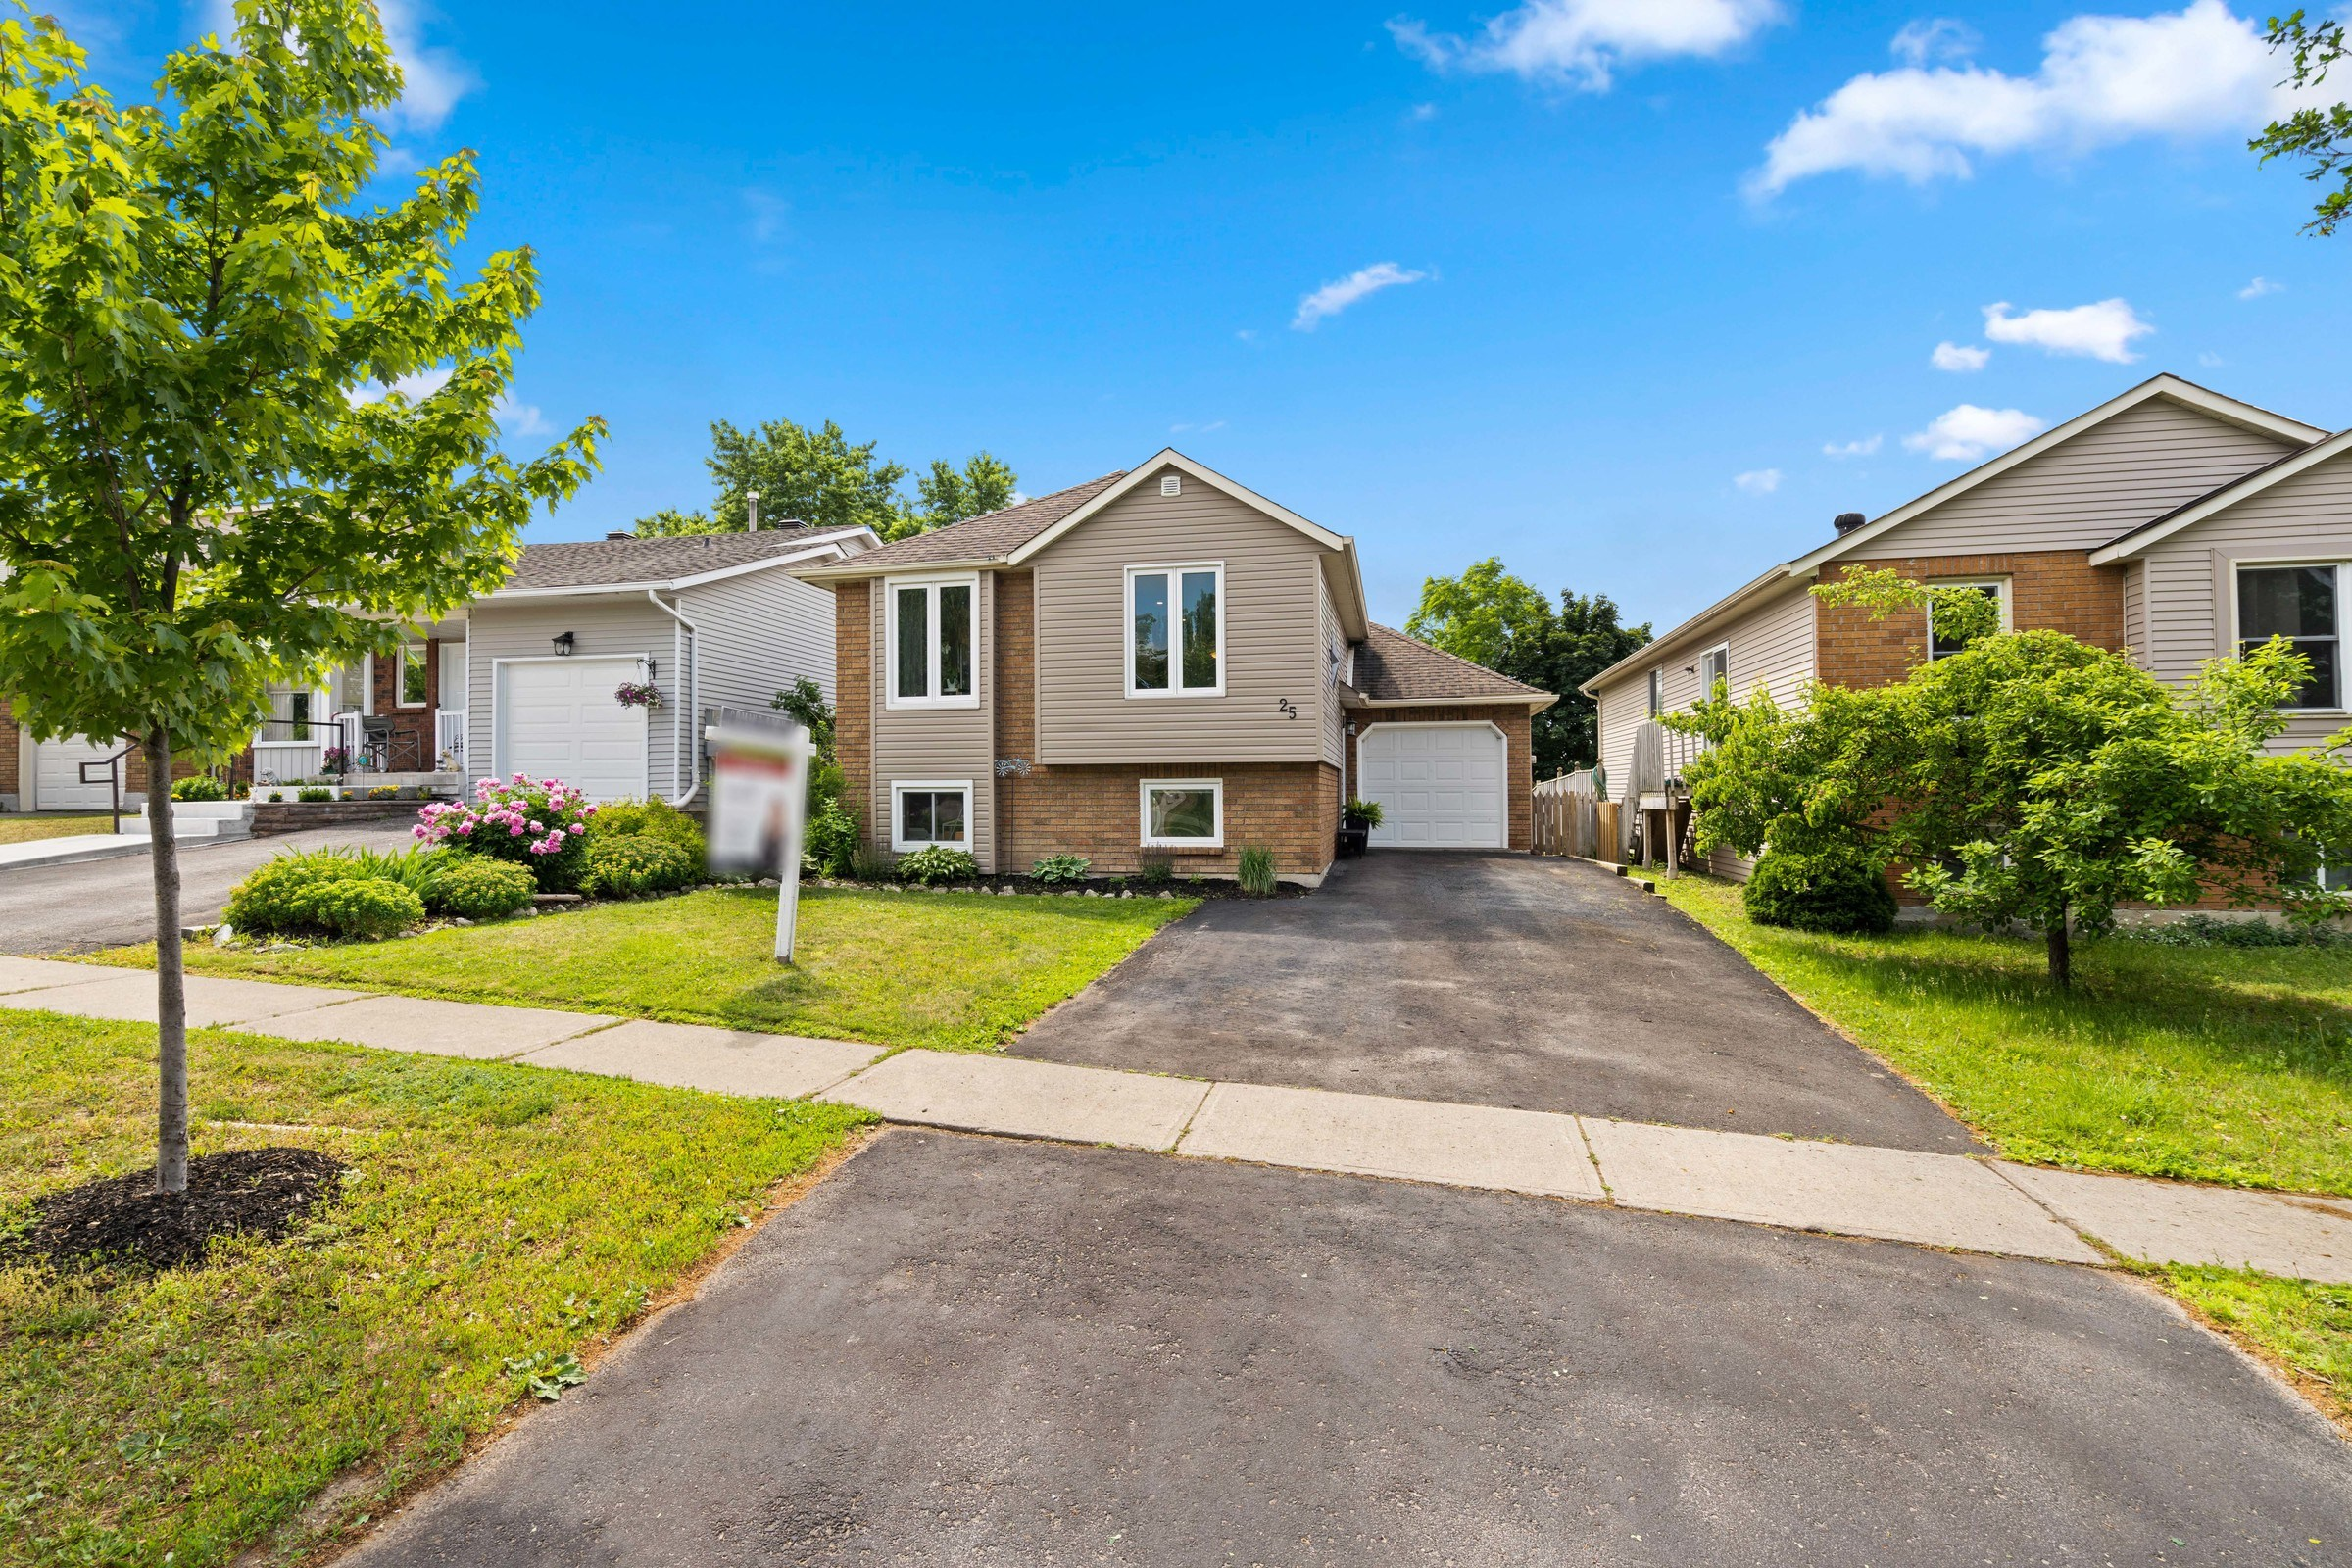 Renovated Bungalow Close To South Barrie Go – 25 Knicely Rd